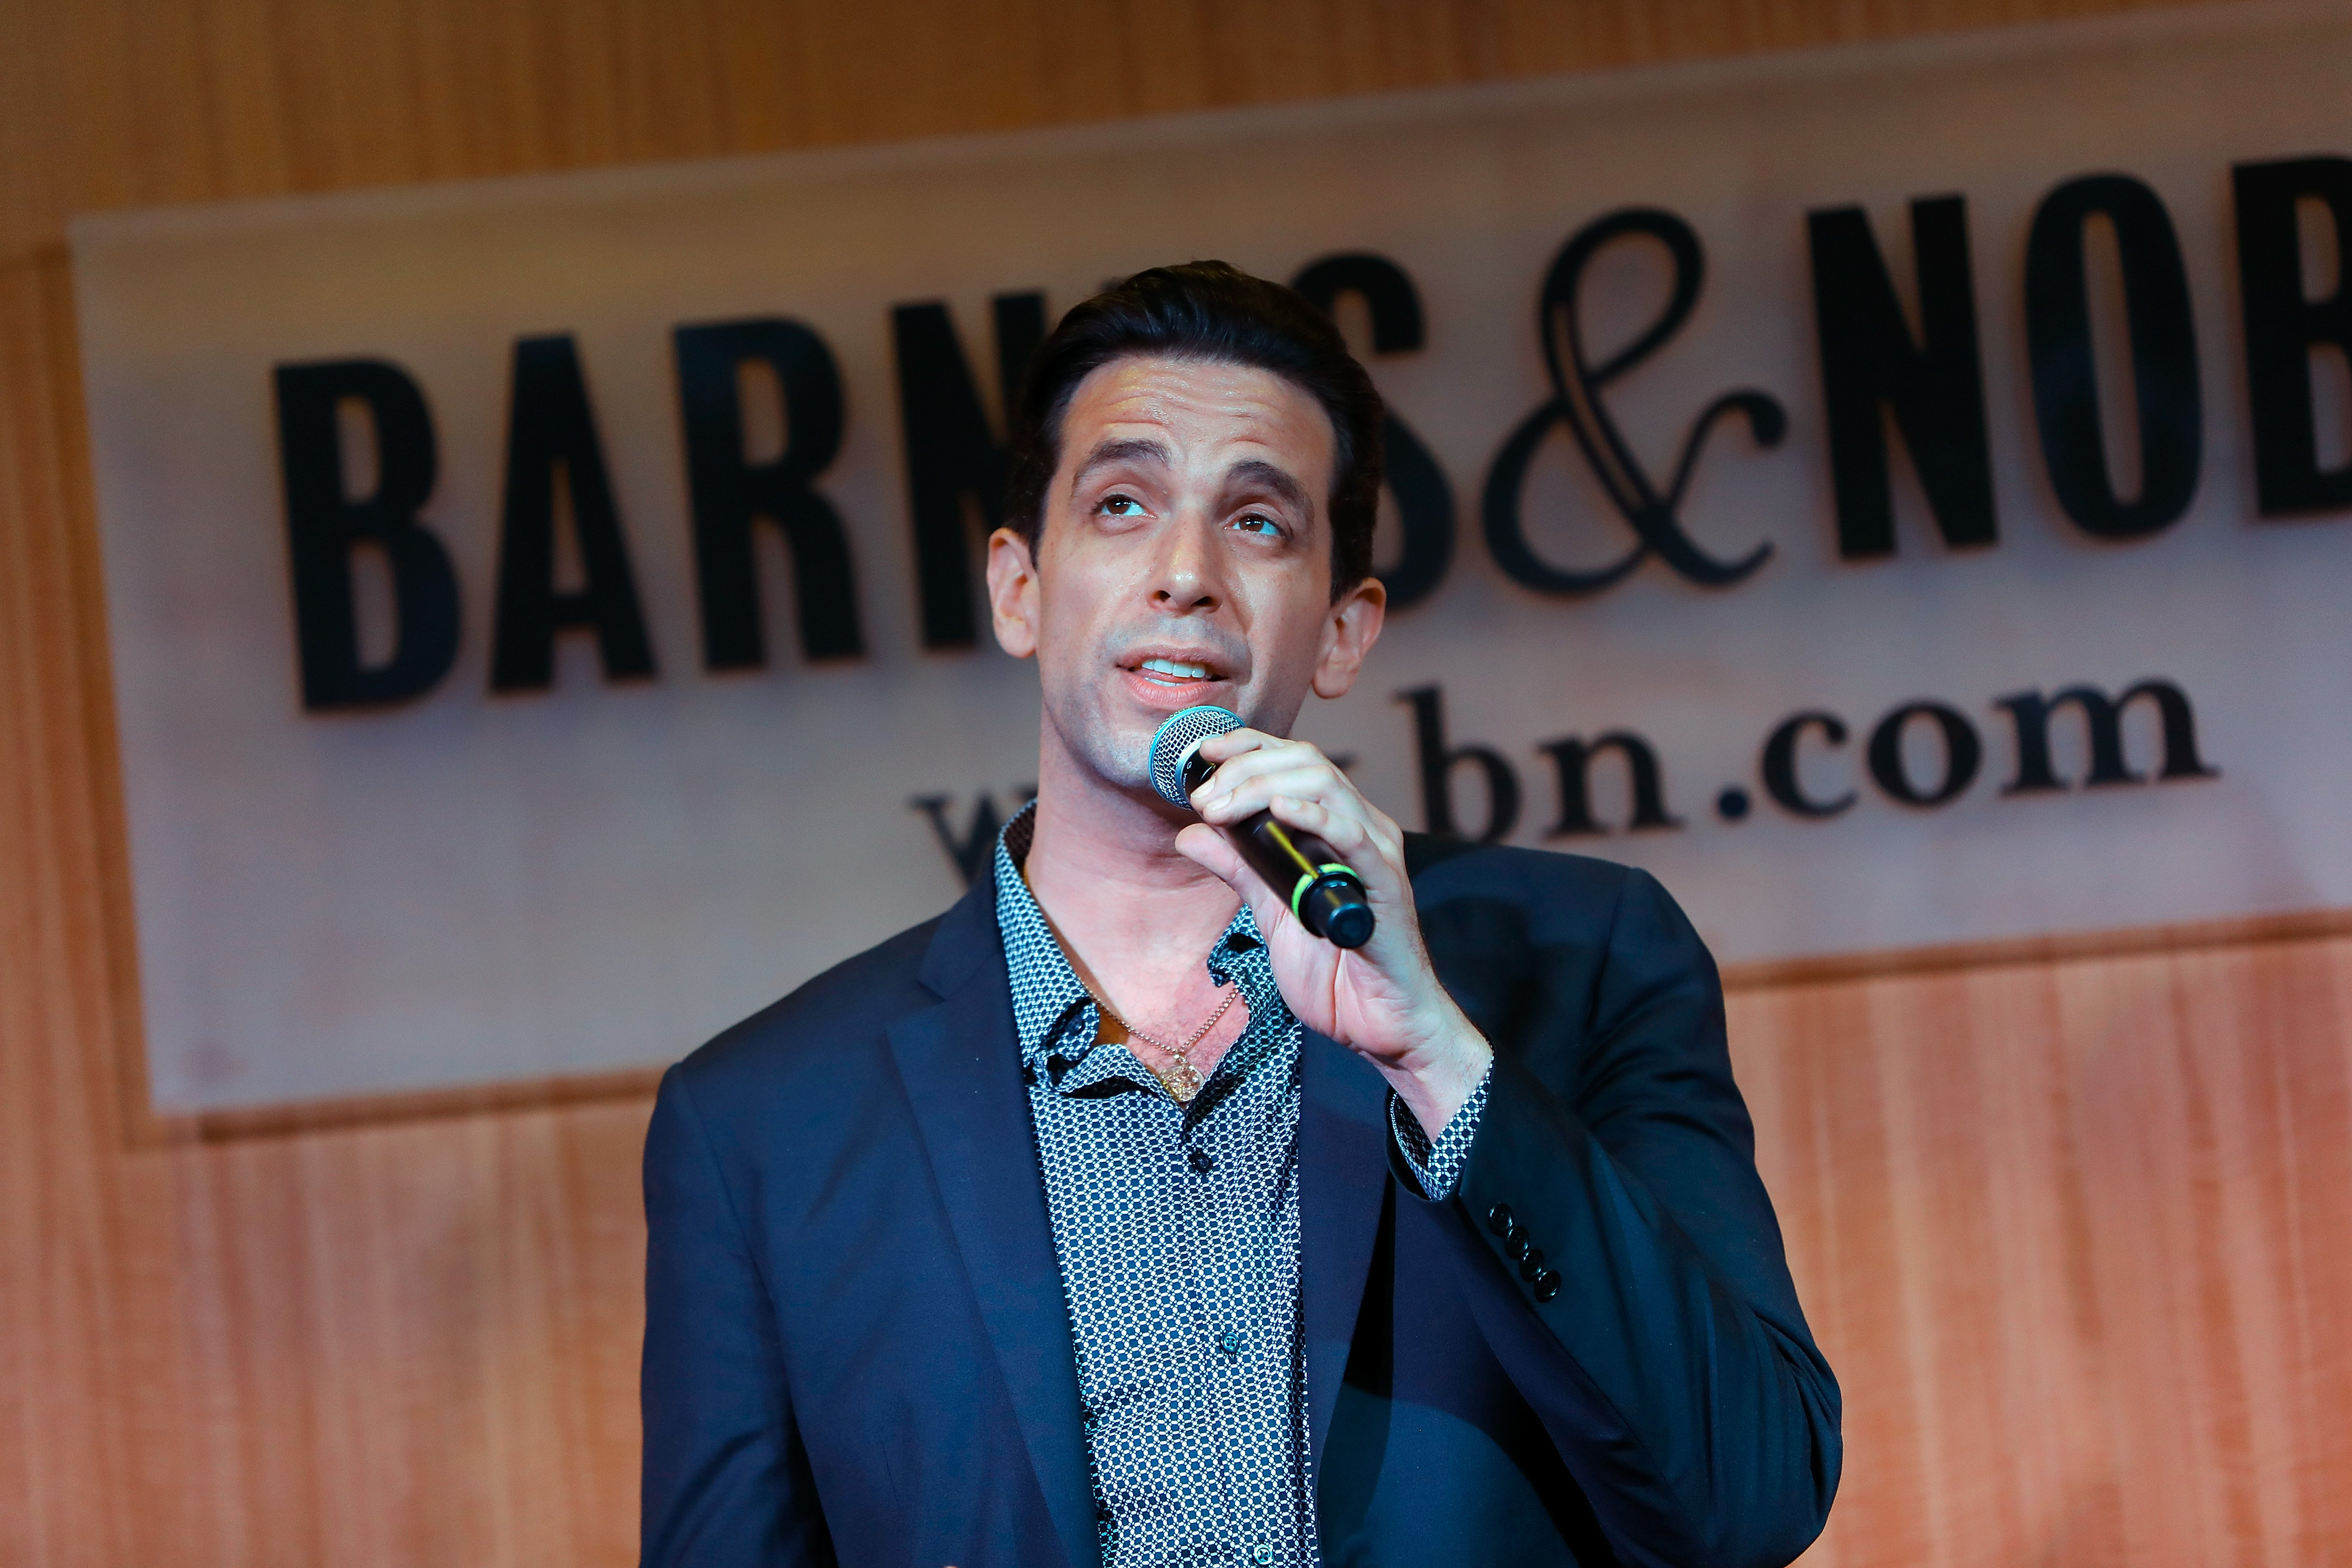 """Broadway star Nick Cordero's live performance in 2017 for his show, """"A Bronx Tale"""" in New York City. 